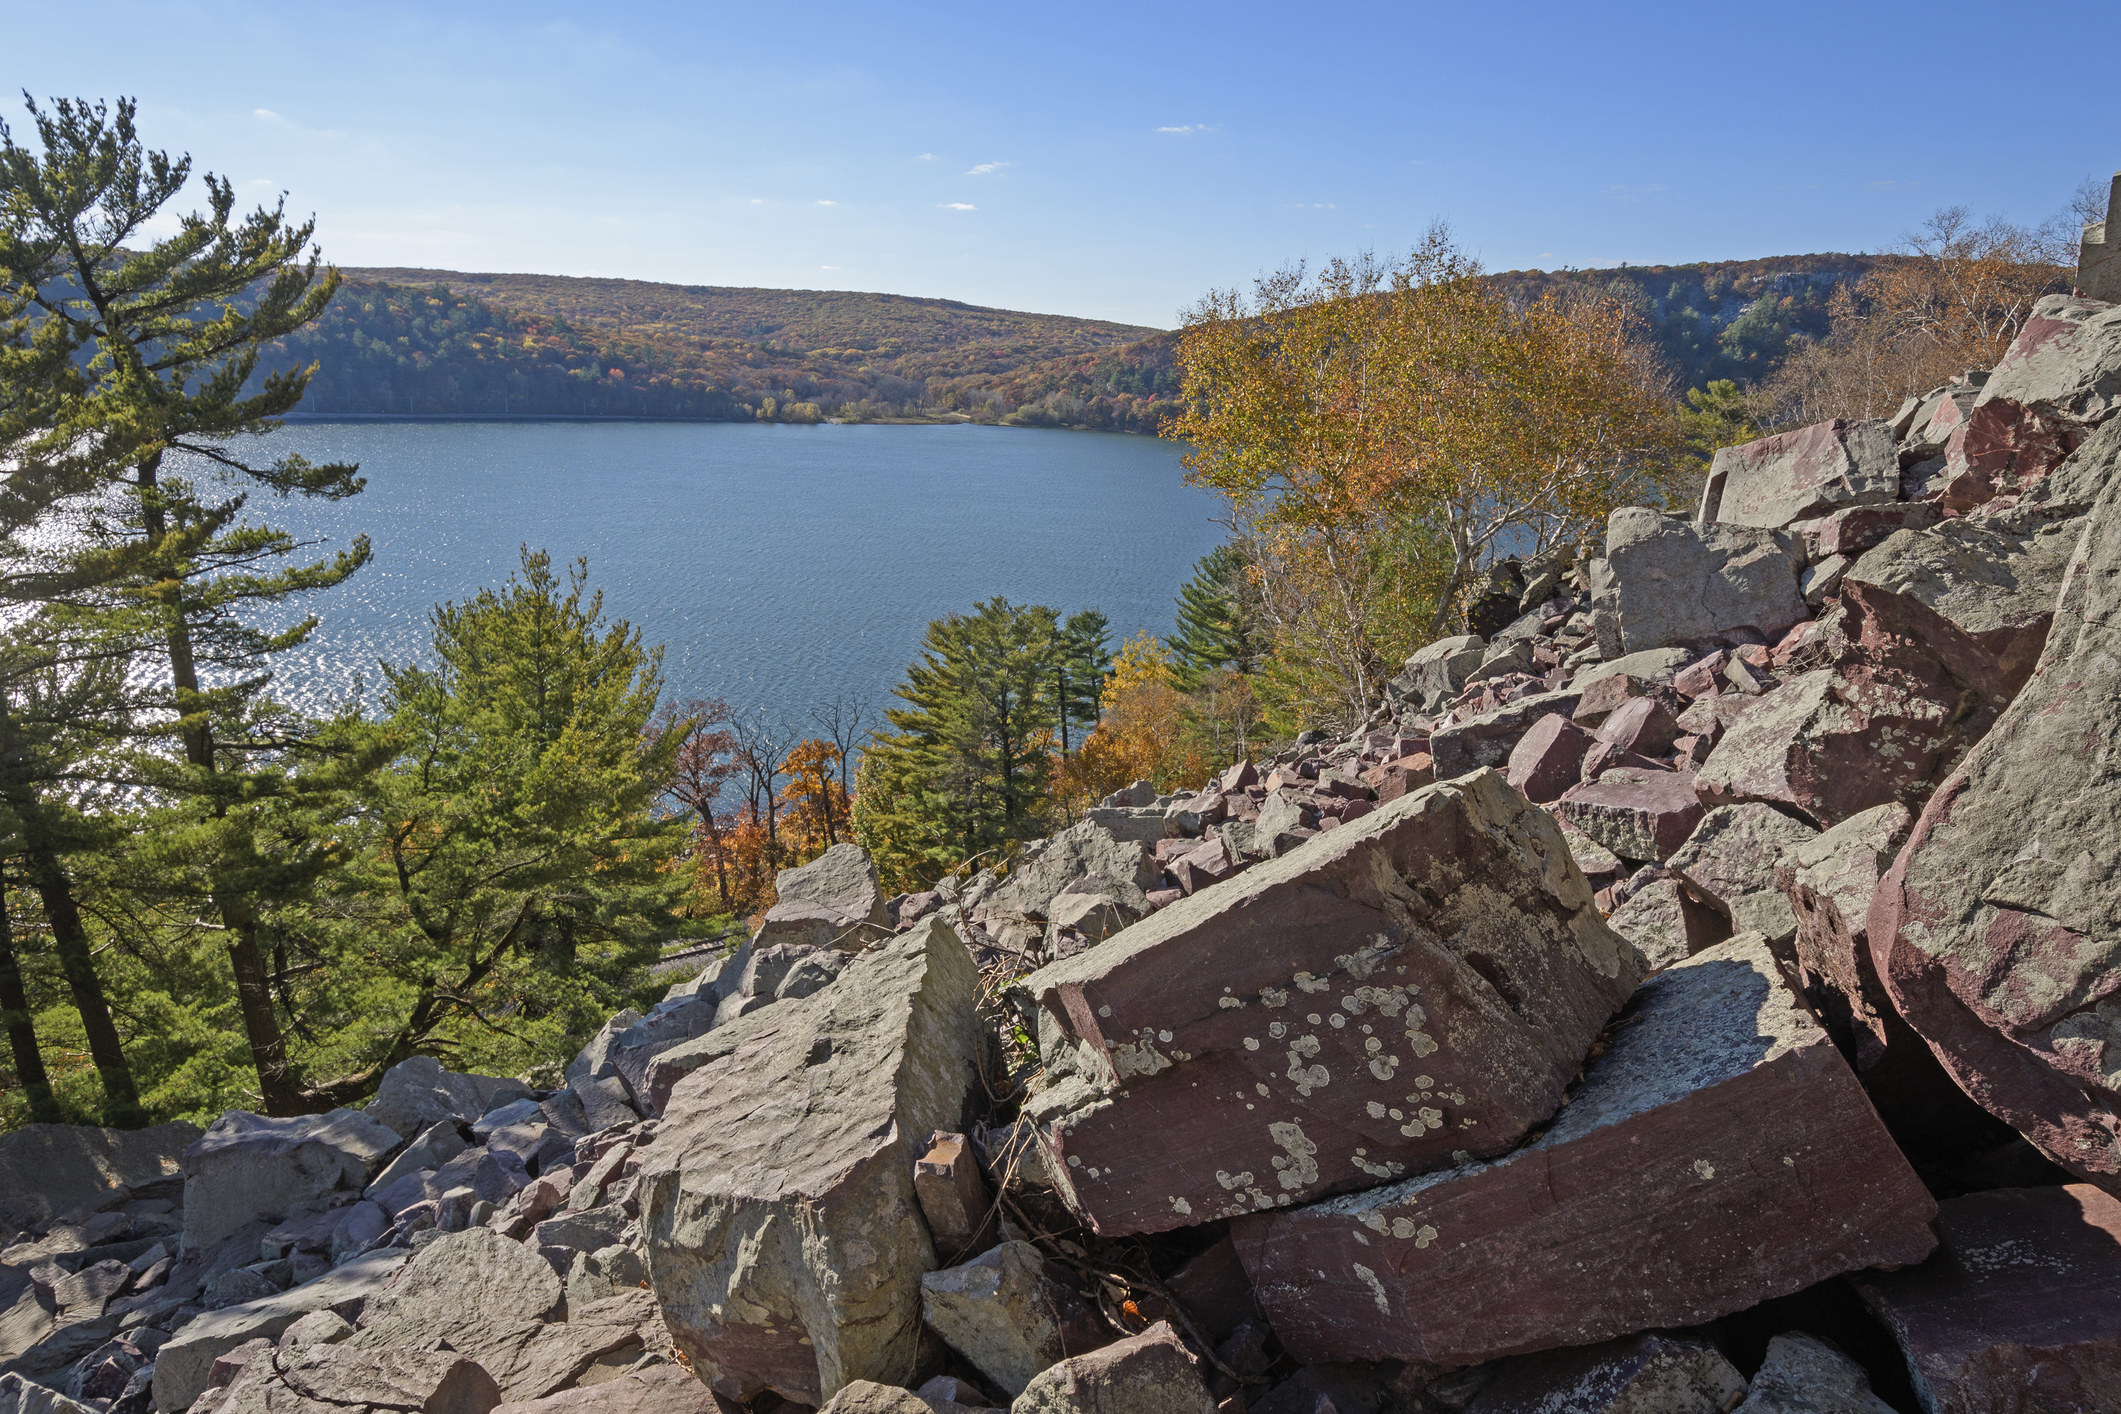 Fall-colored trees surround rocks and water at Devil's Lake State Park in Wisconsin